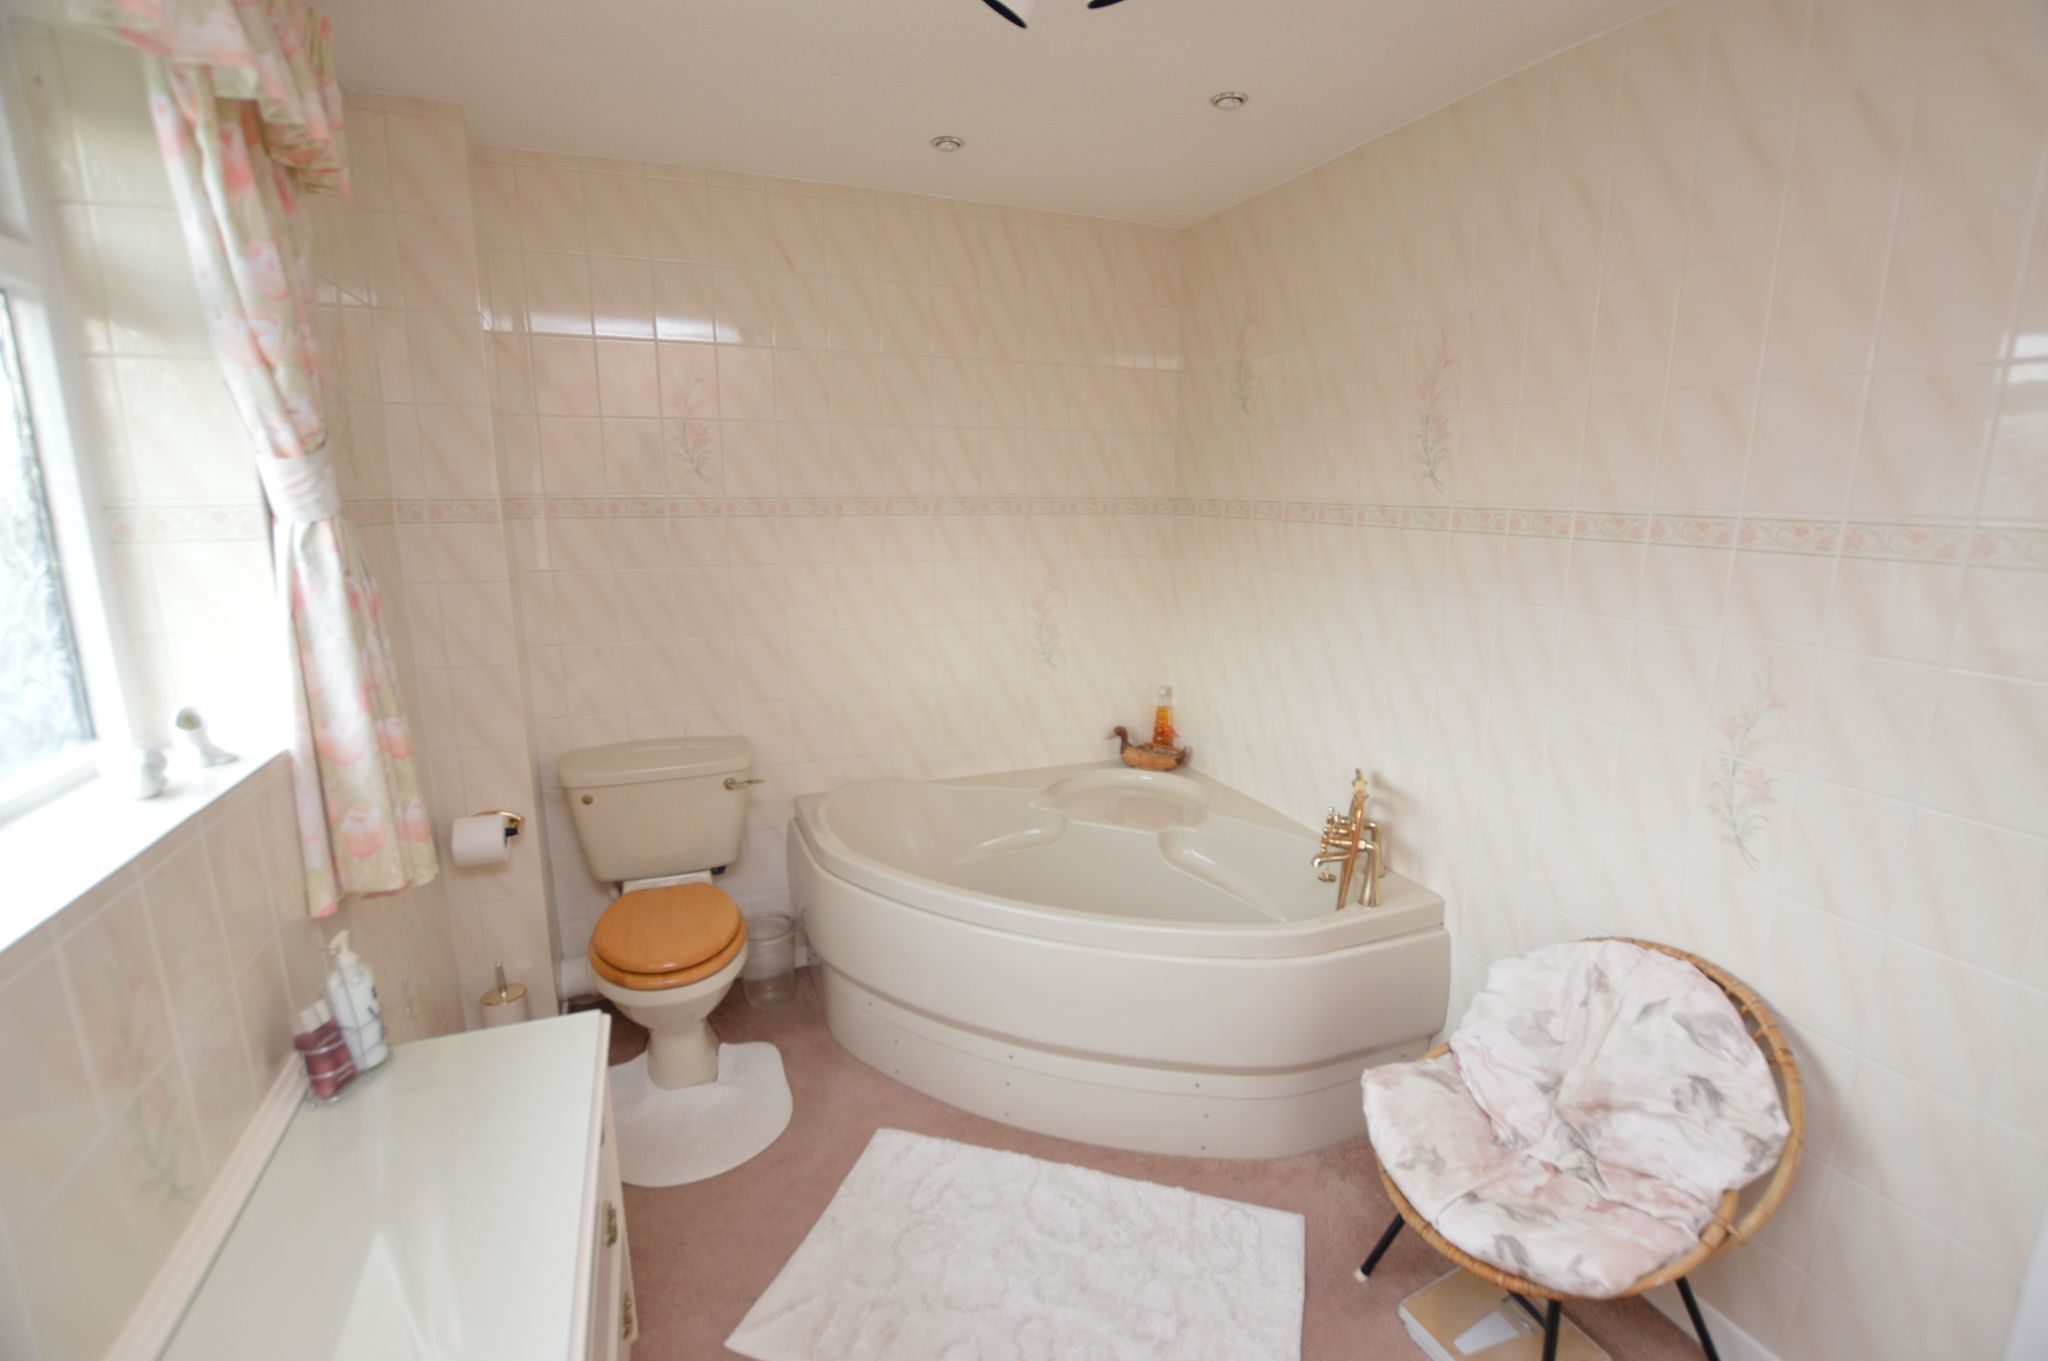 4 bedroom detached house For Sale in Abergele - Bathroom